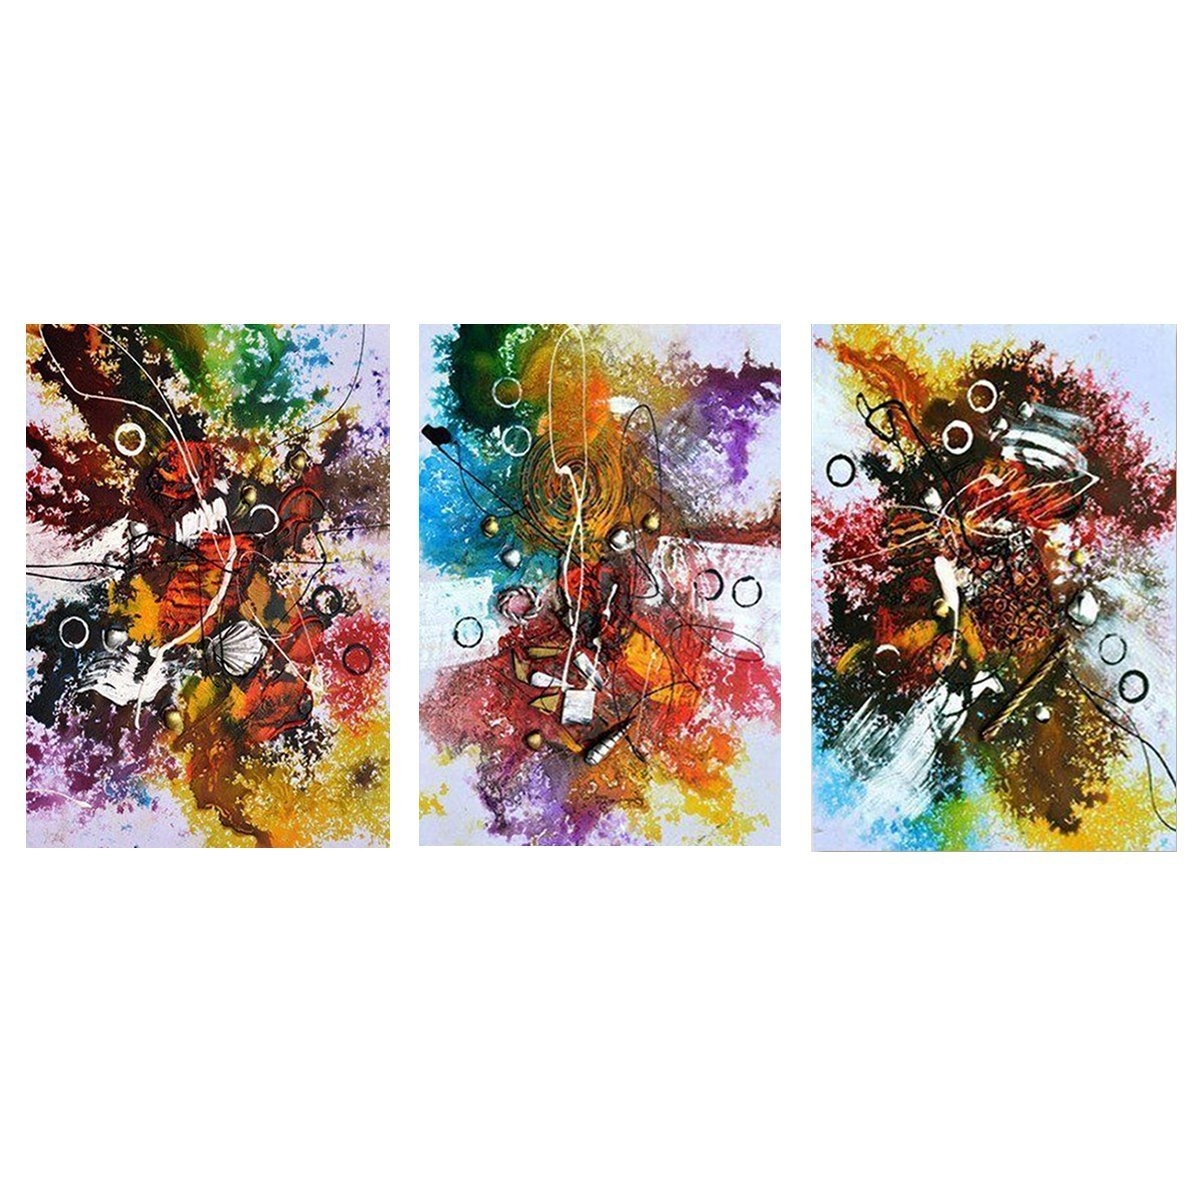 Abstract Modern Oil Paintings Canvas Wall Art Printed Pictures Home Intended For Current Modern Painting Canvas Wall Art (View 8 of 20)